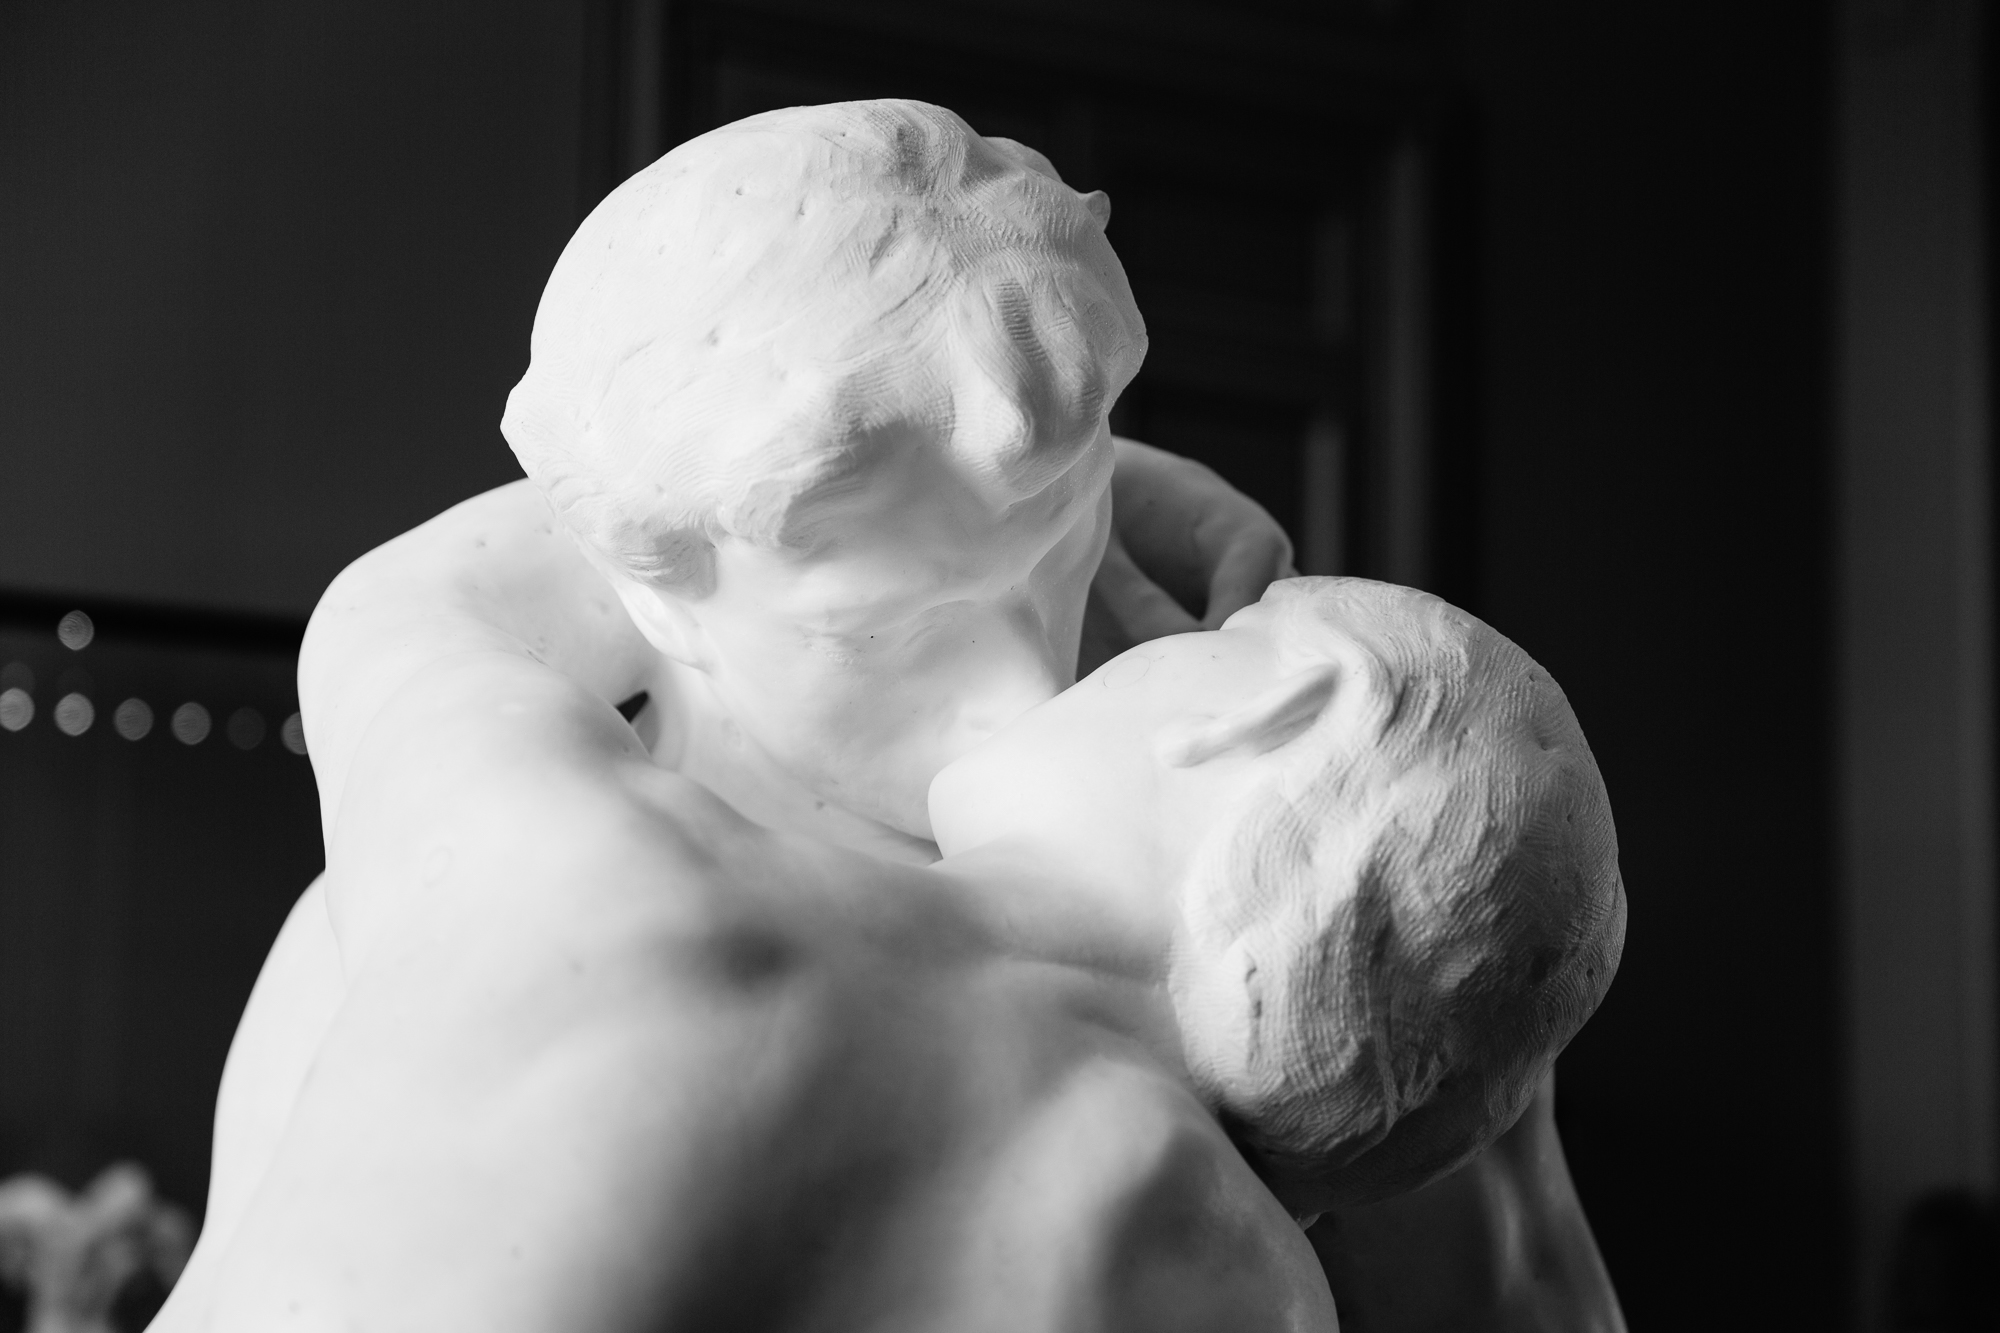 The Kiss statue at Musee Rodin